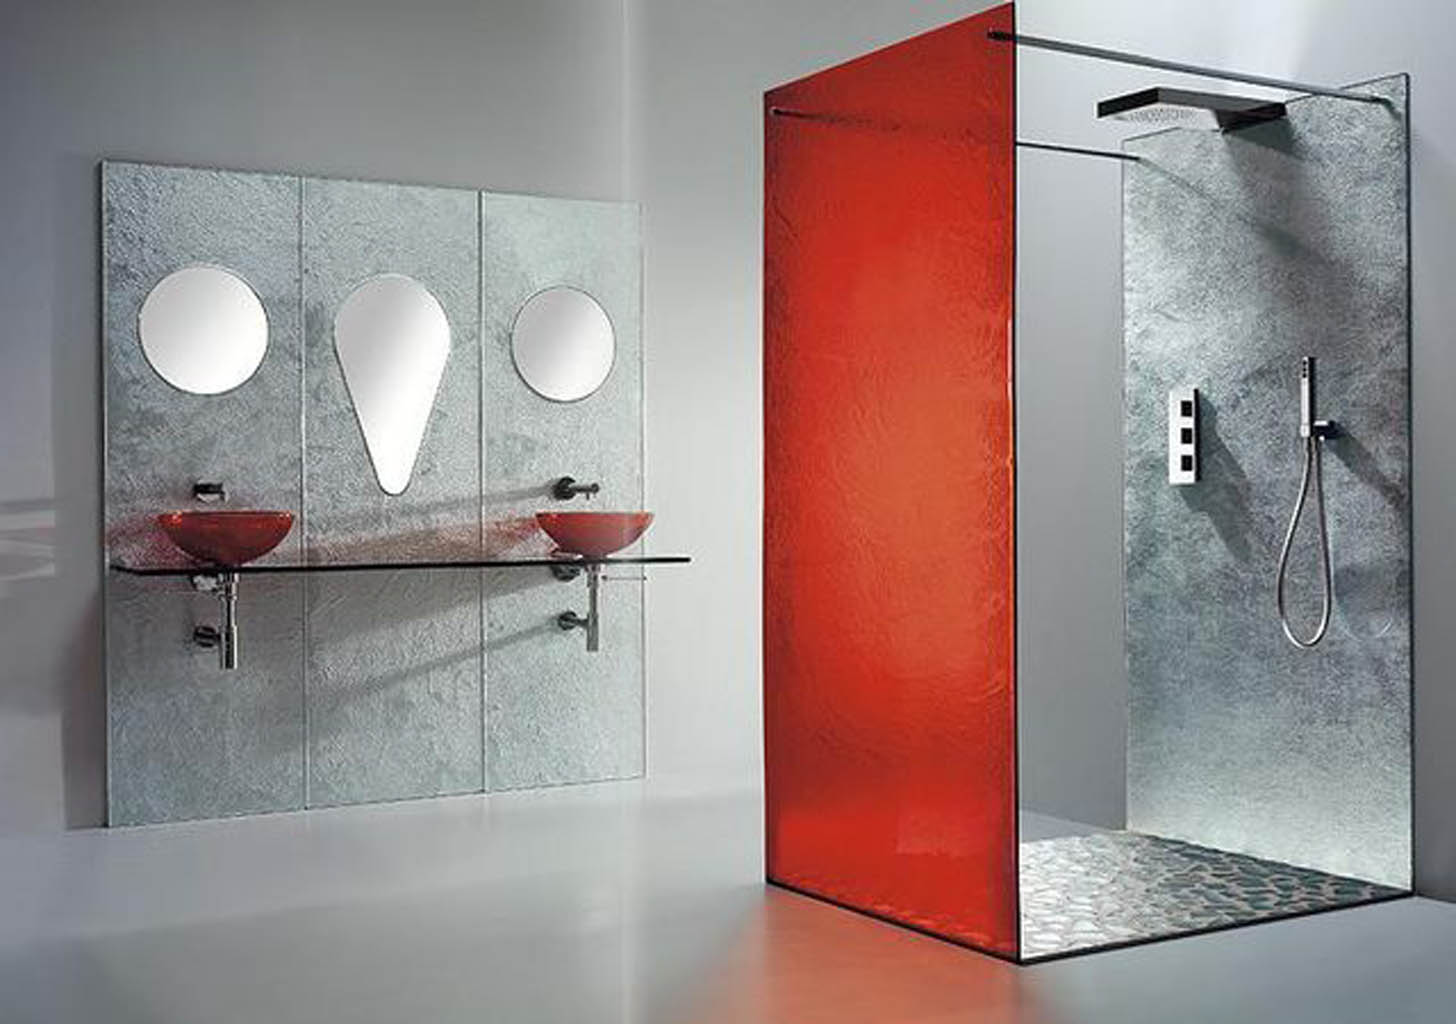 Glass Tiles Lepa Kuca - Colored-and-clear-glass-tiles-by-vetrocolor